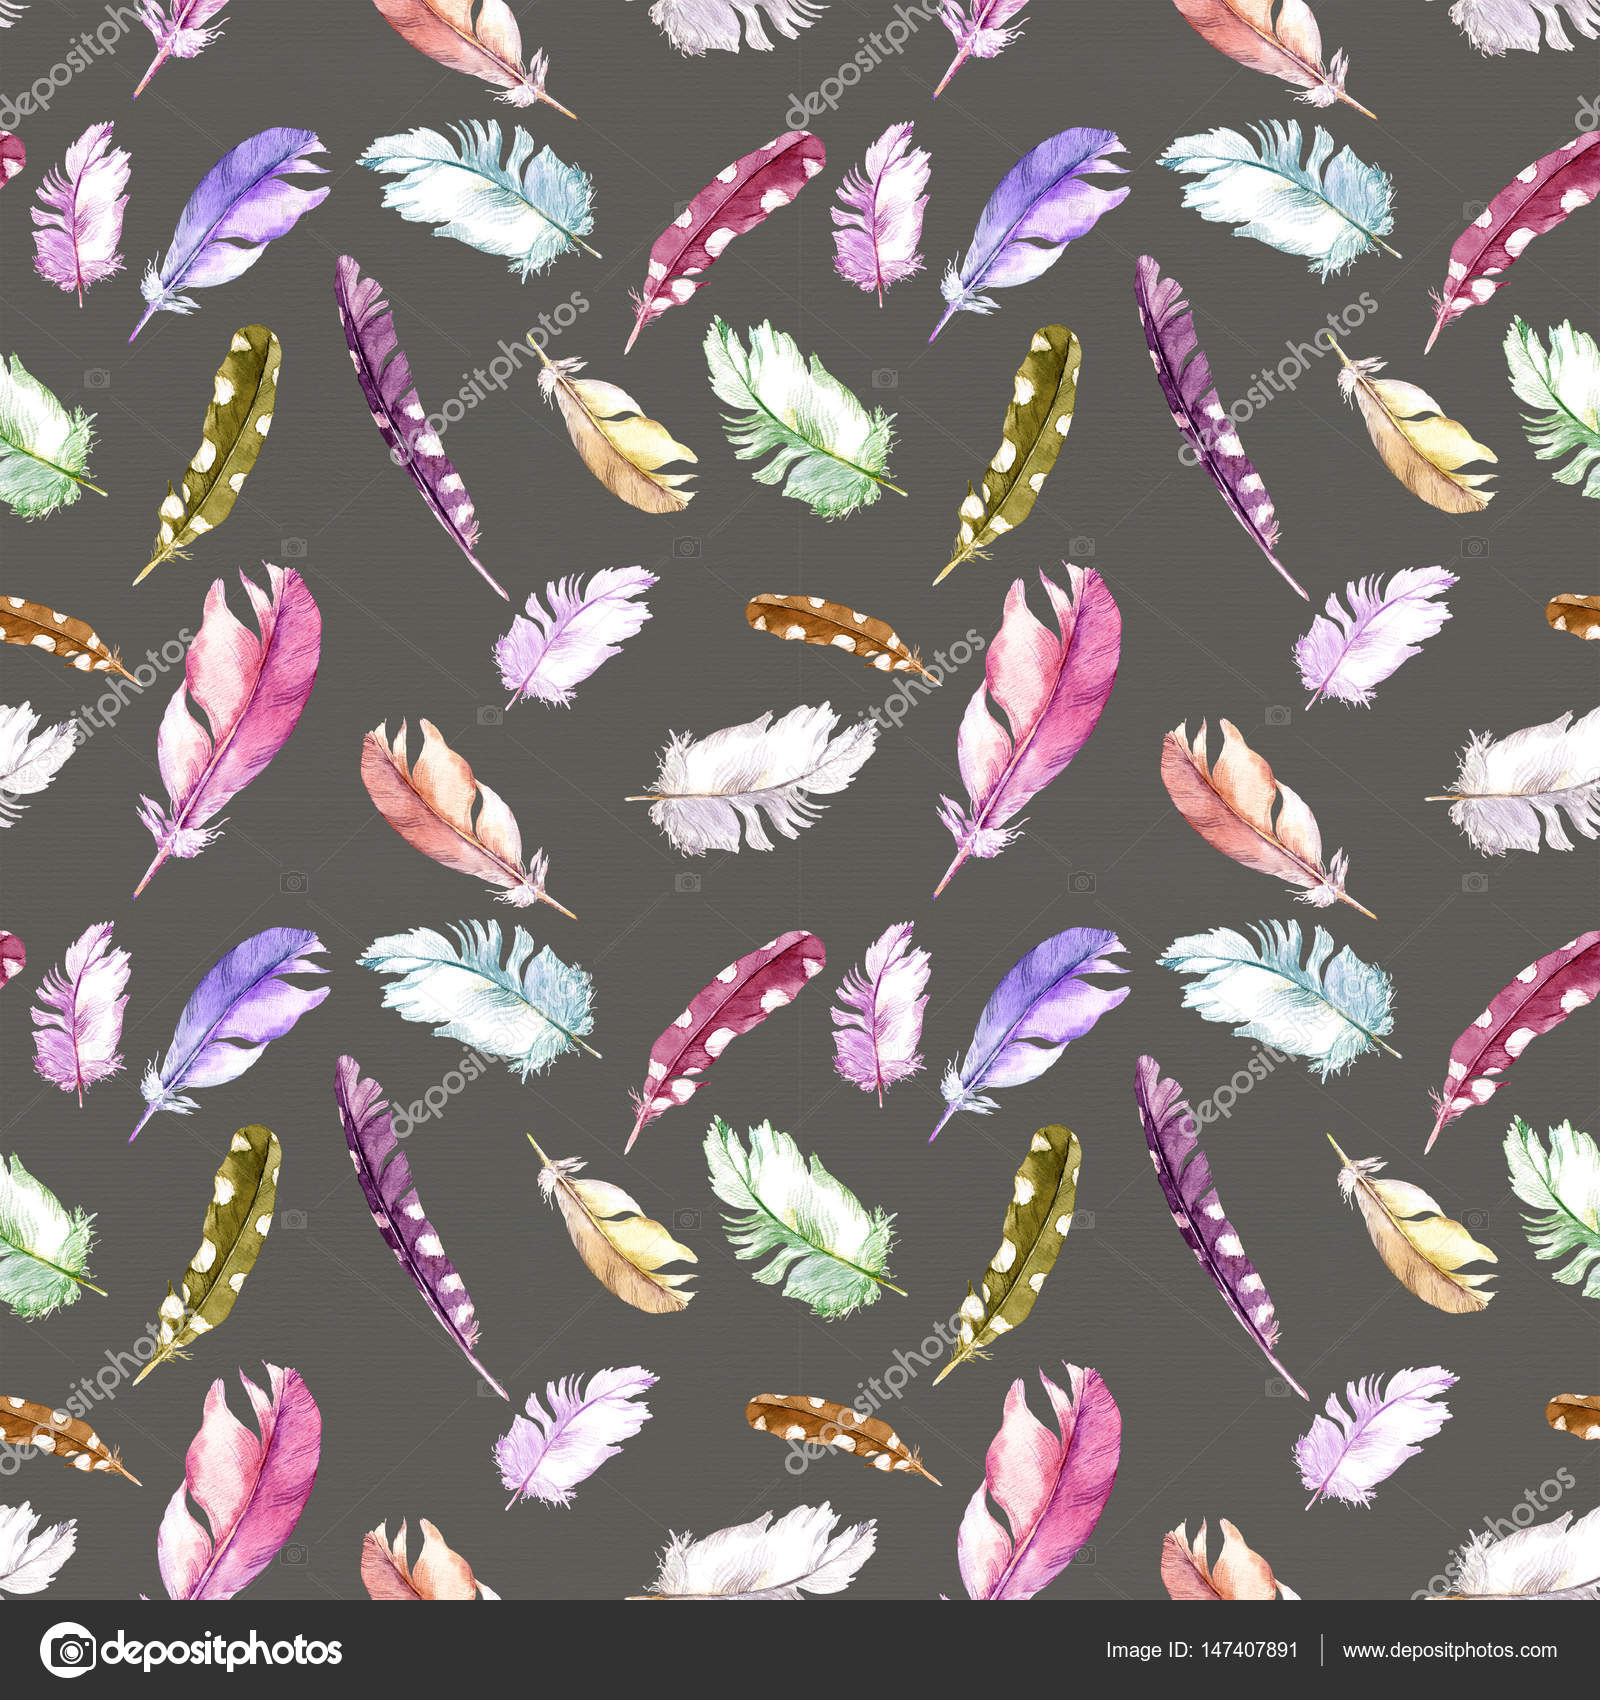 Feathers Pattern For Wallpaper Design Watercolor Seamless Background Stock Photo